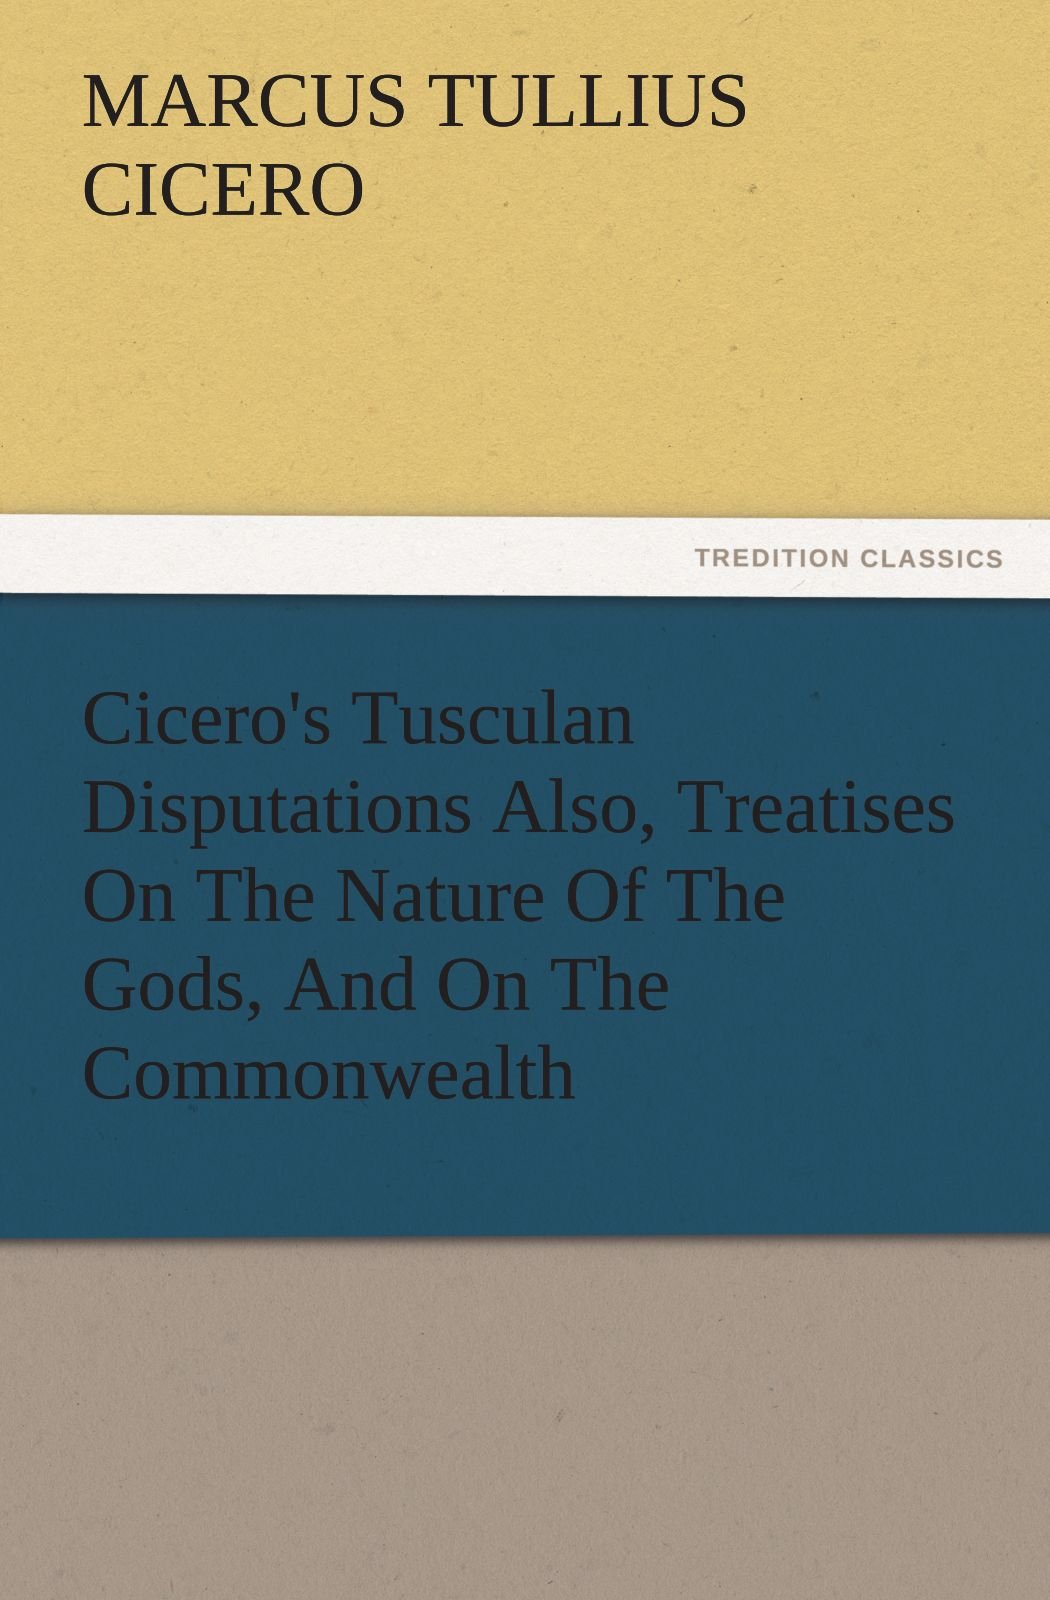 Download Cicero's Tusculan Disputations Also, Treatises On The Nature Of The Gods, And On The Commonwealth (TREDITION CLASSICS) pdf epub